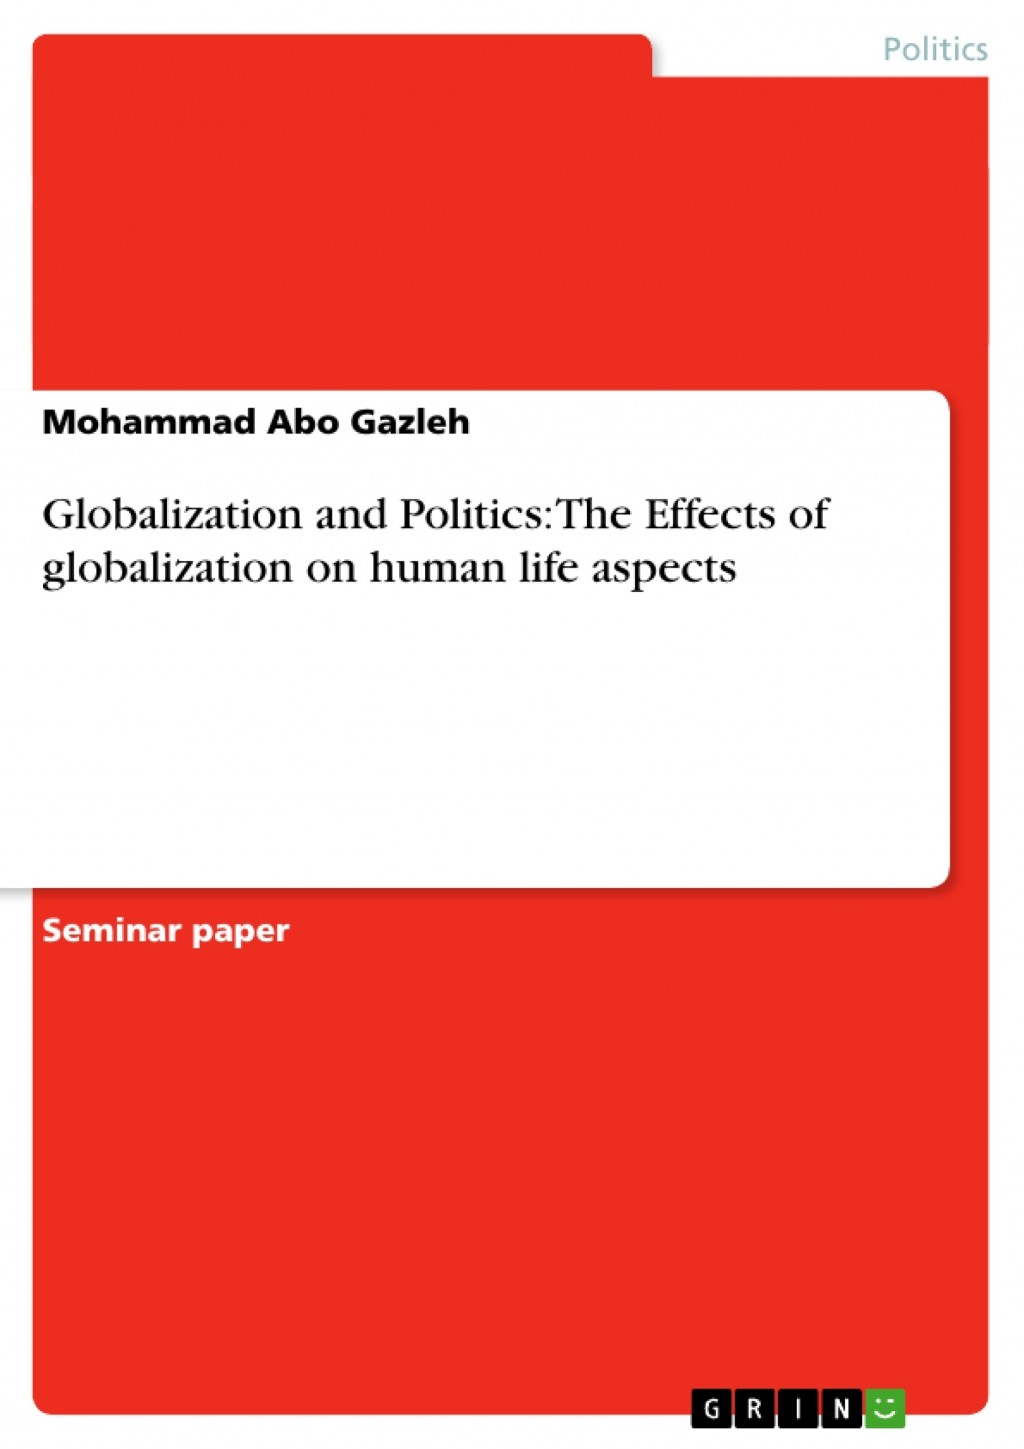 013 110500 0 Business Topics For Research Paper Magnificent Globalization Large